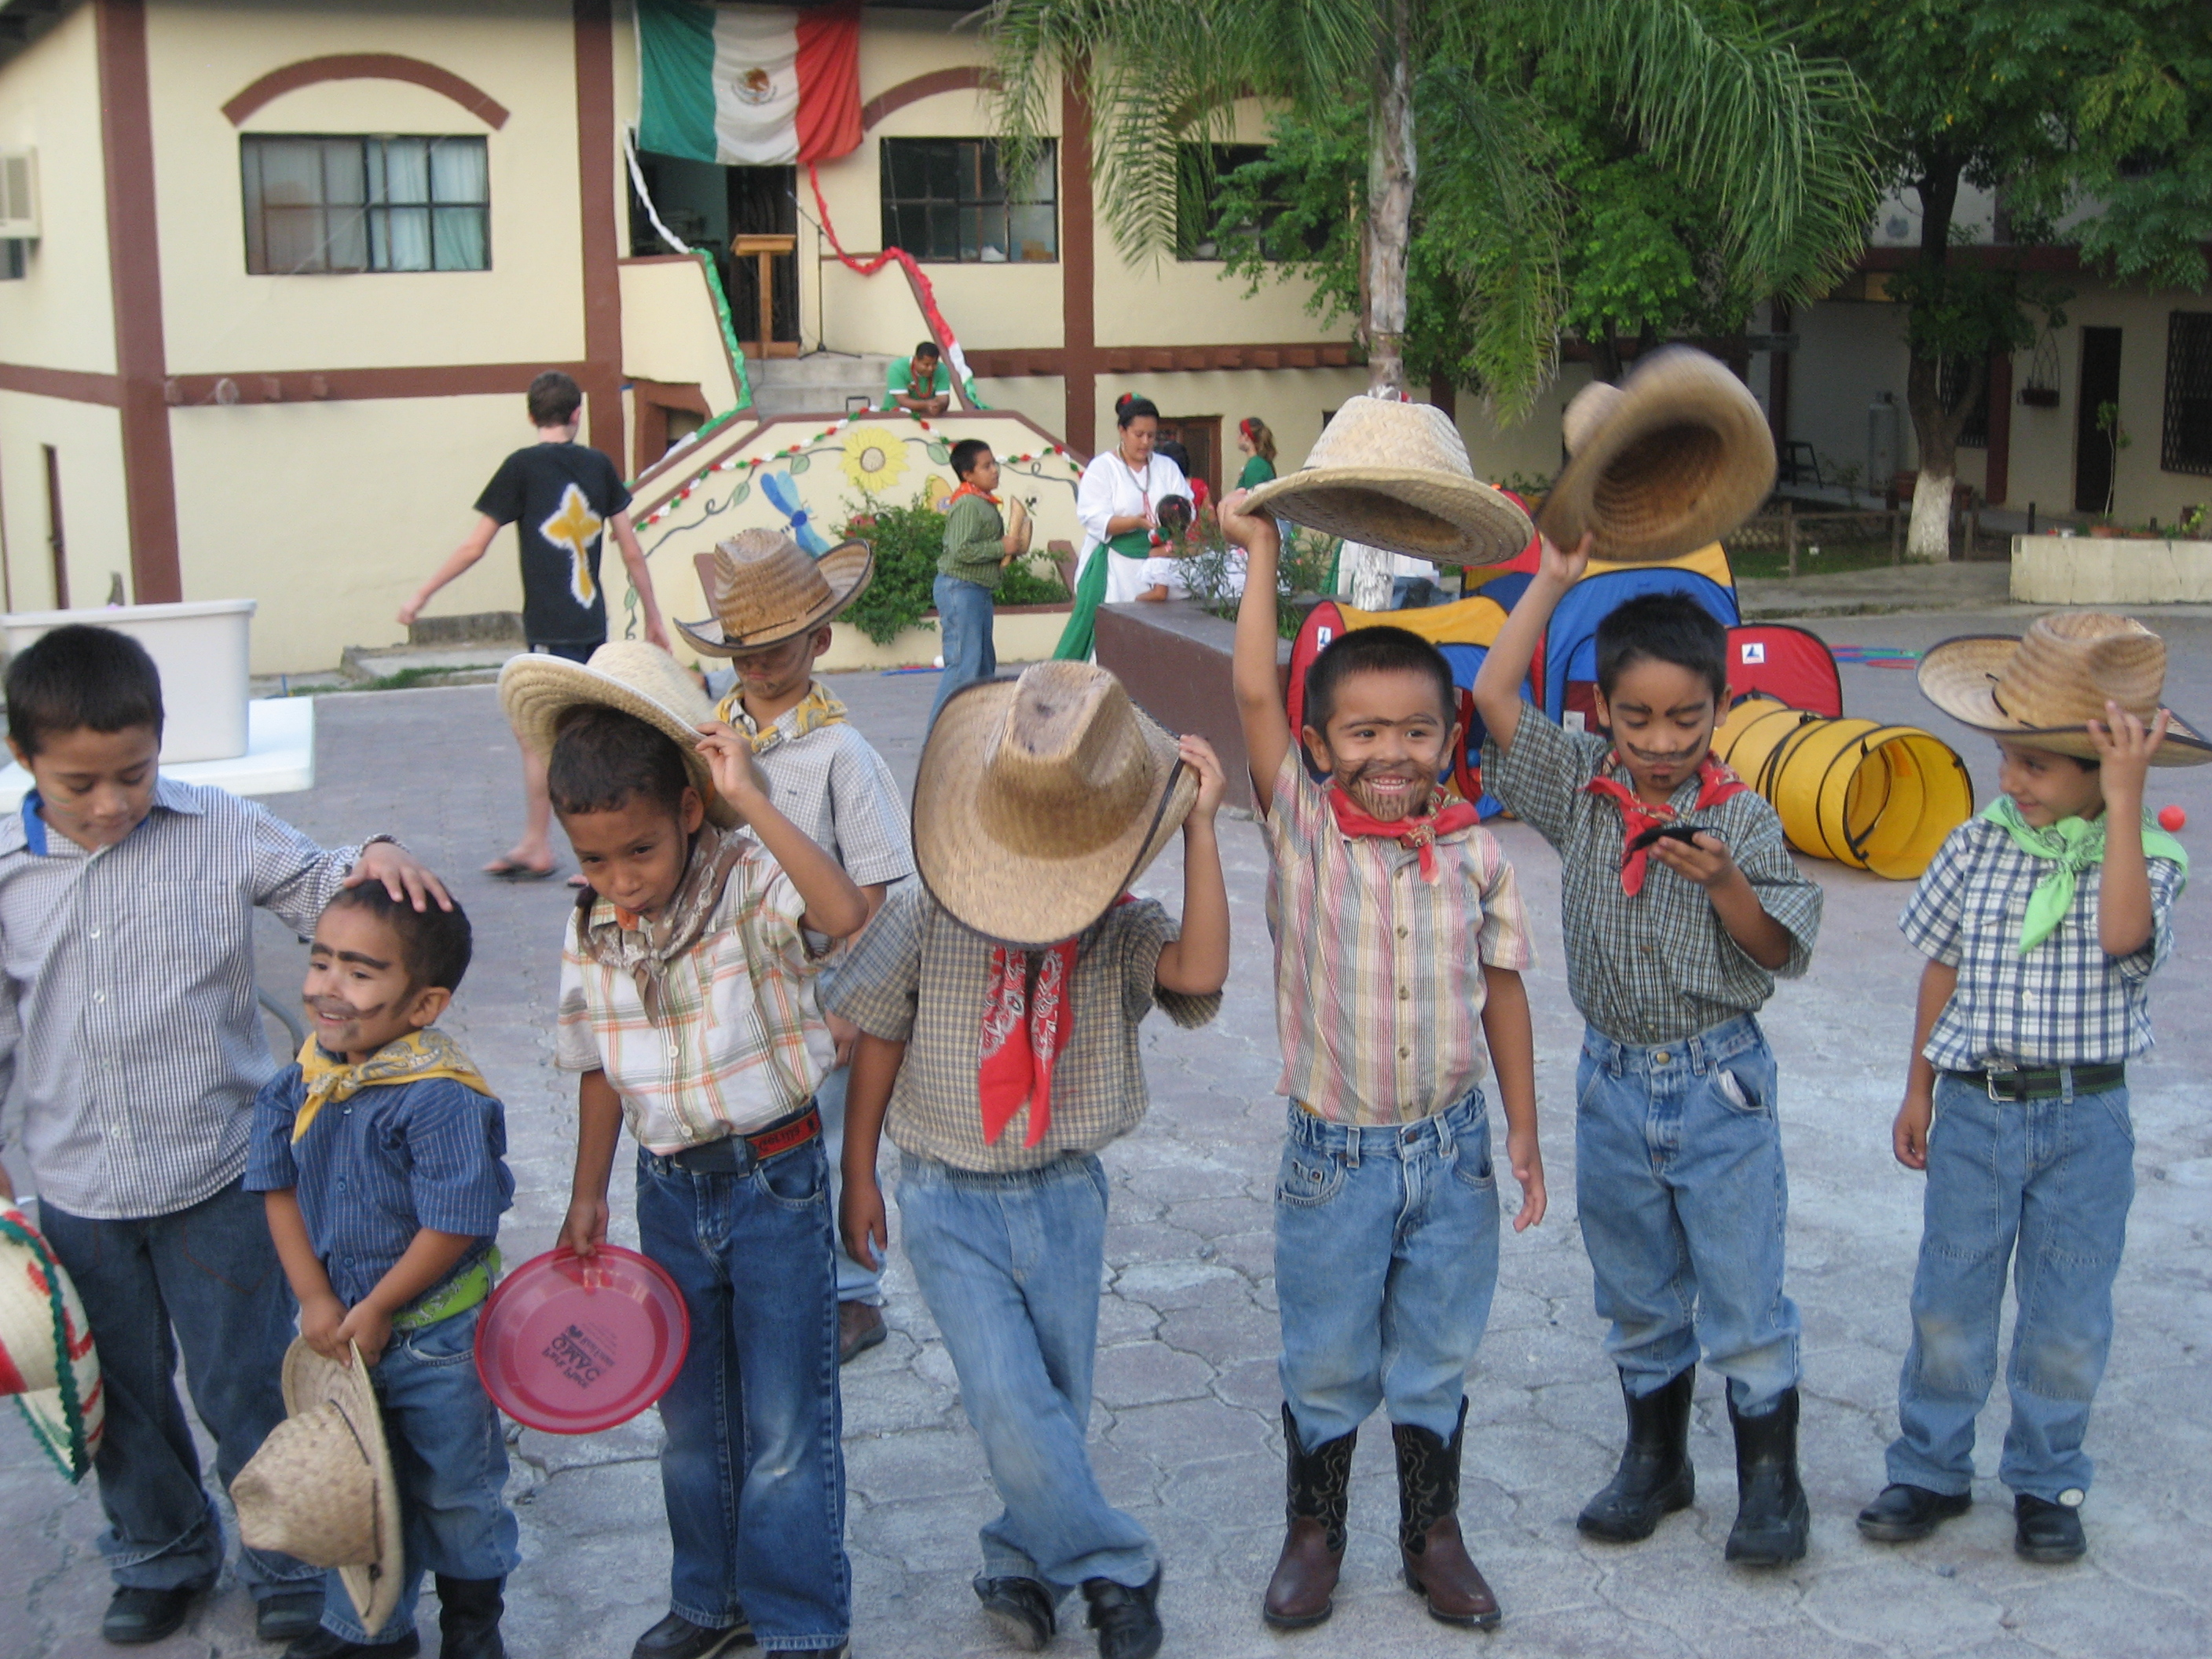 The children dressed up in costumes to celebrate